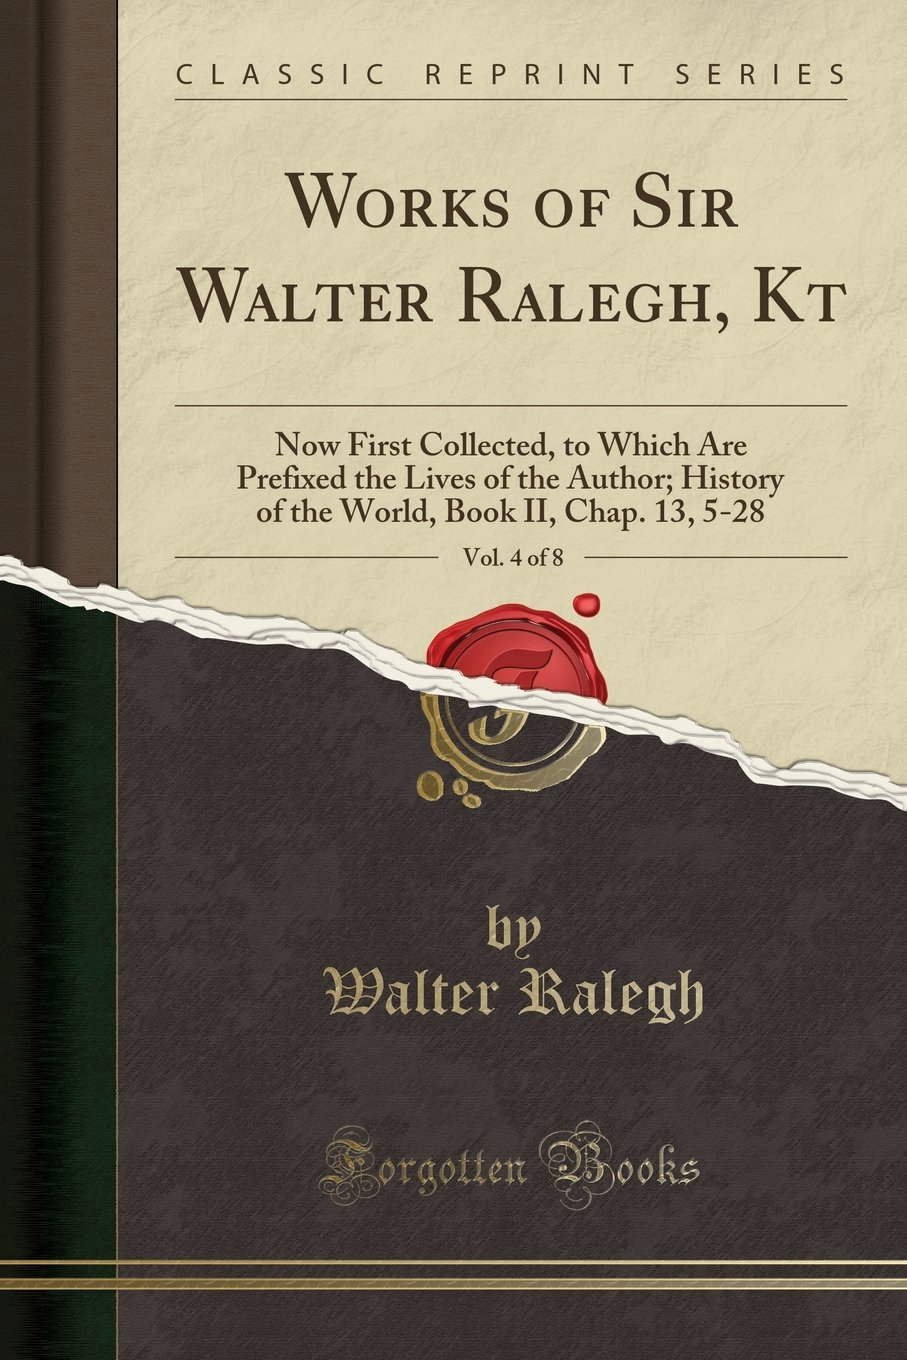 Works of Sir Walter Ralegh, Kt, Vol. 4 of 8: Now First Collected, to Which Are Prefixed the Lives of the Author; History of the World, Book II, Chap. 13, 5-28 (Classic Reprint) pdf